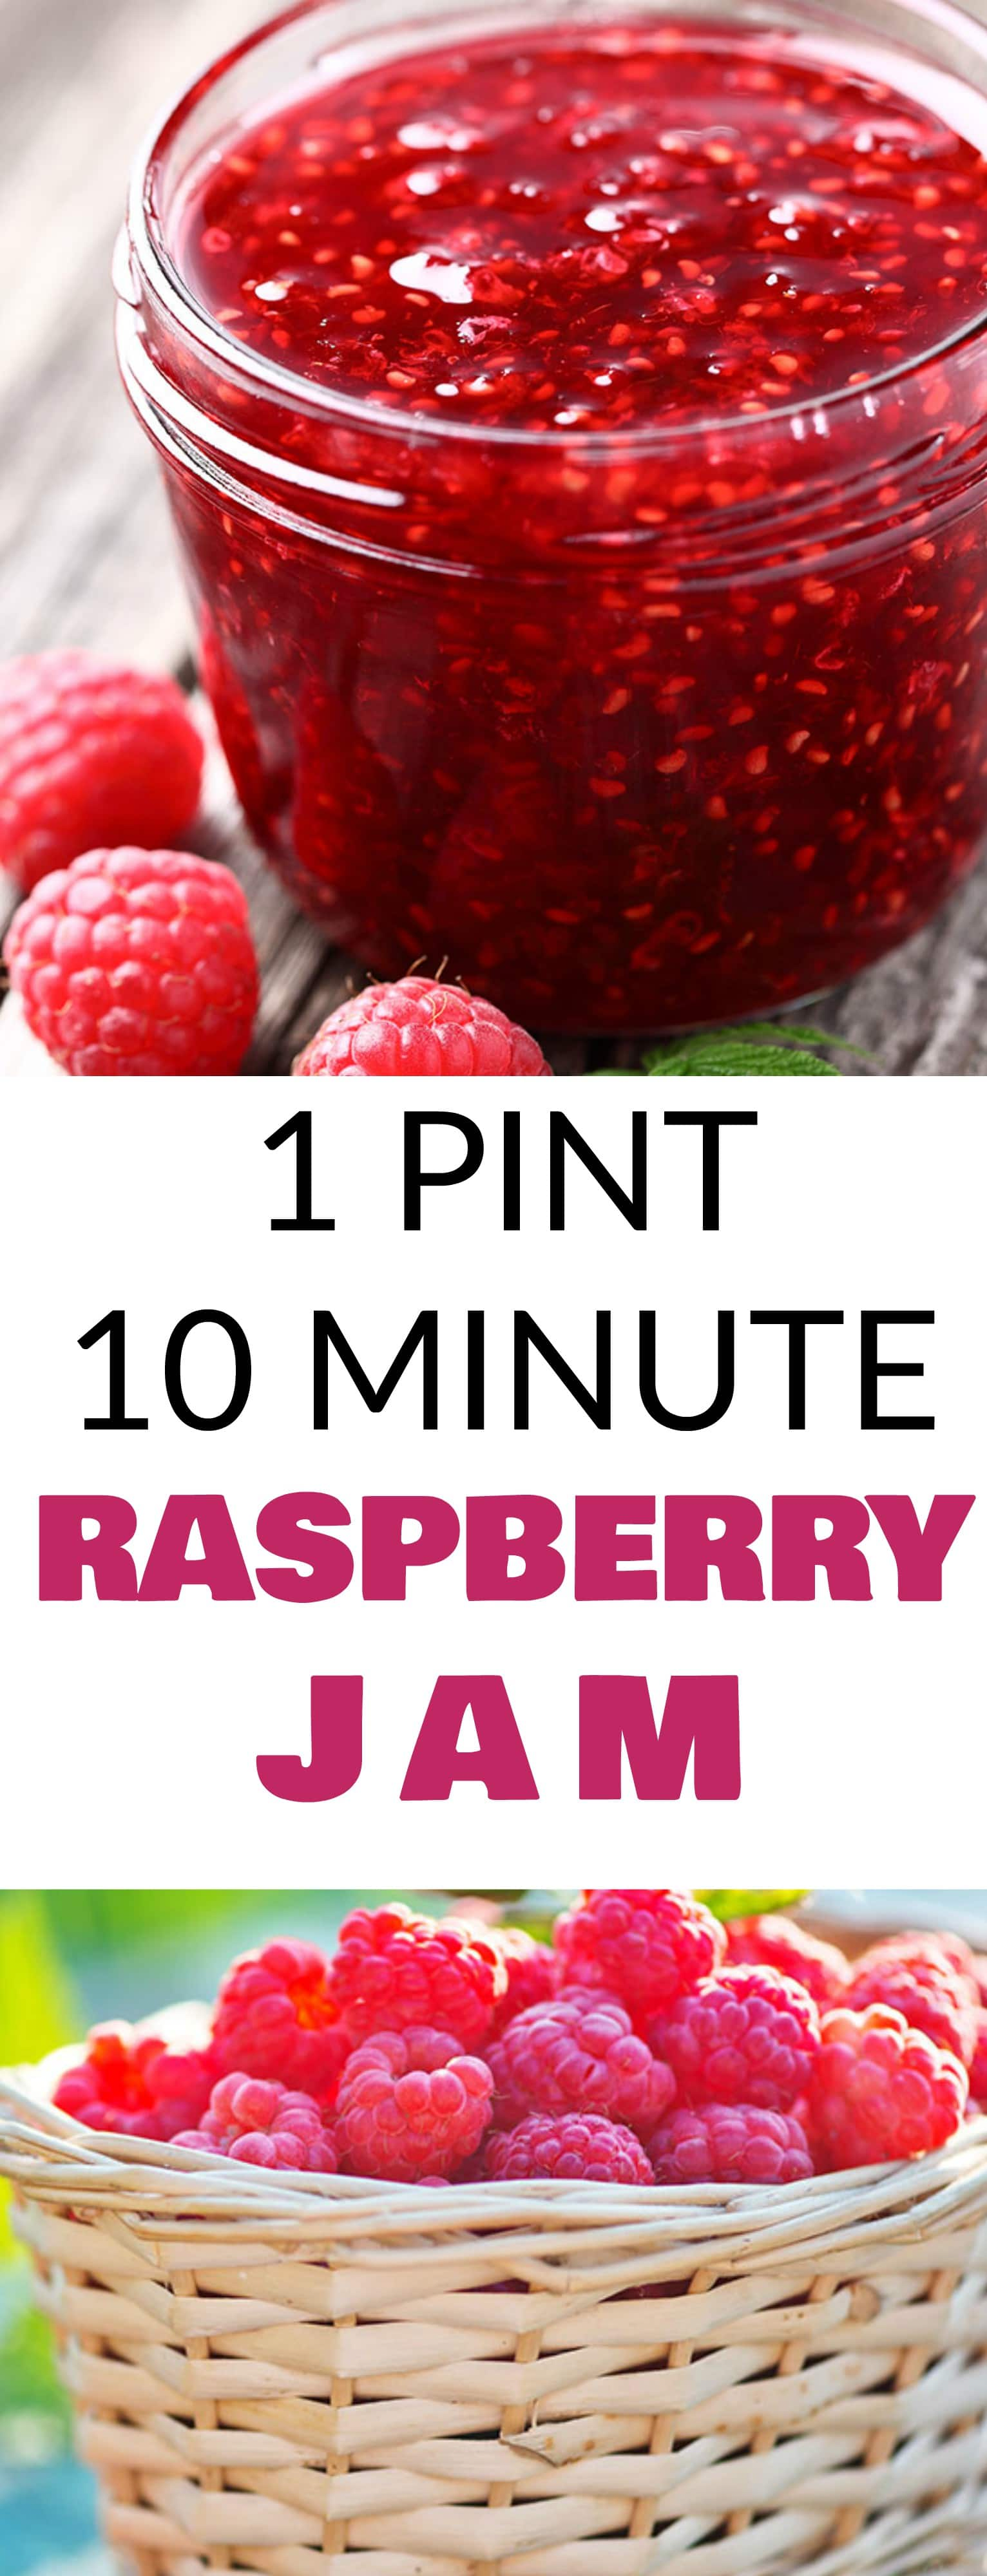 Easy 10 Minute Raspberry Jam recipe! This healthy homemade recipe uses 1 pint of fresh raspberries, honey and lemon juice. NO pectin or sugar required!  I always make 2 jars - one to store in the refrigerator and one to store in the freezer!